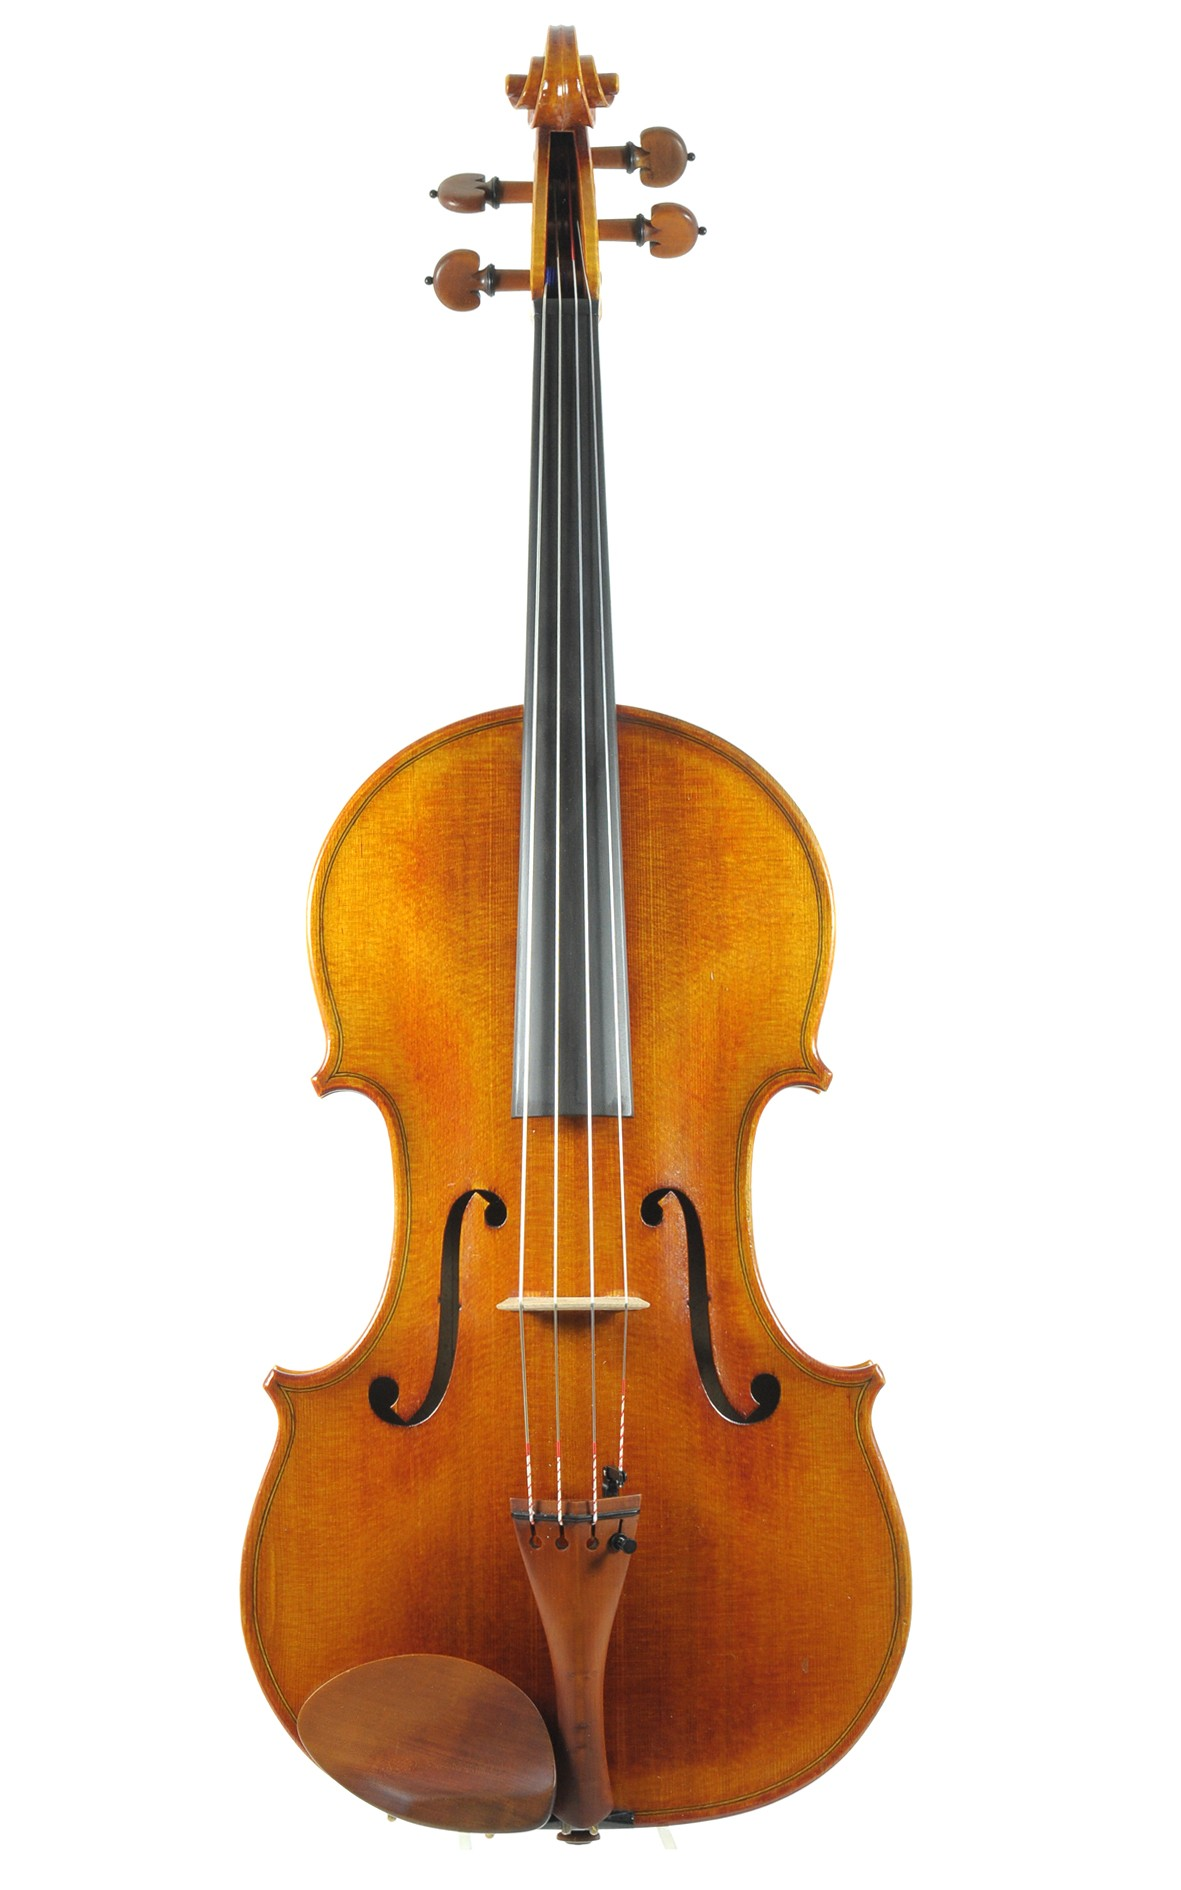 Master viola by Eric Voigt, Manchester 1963